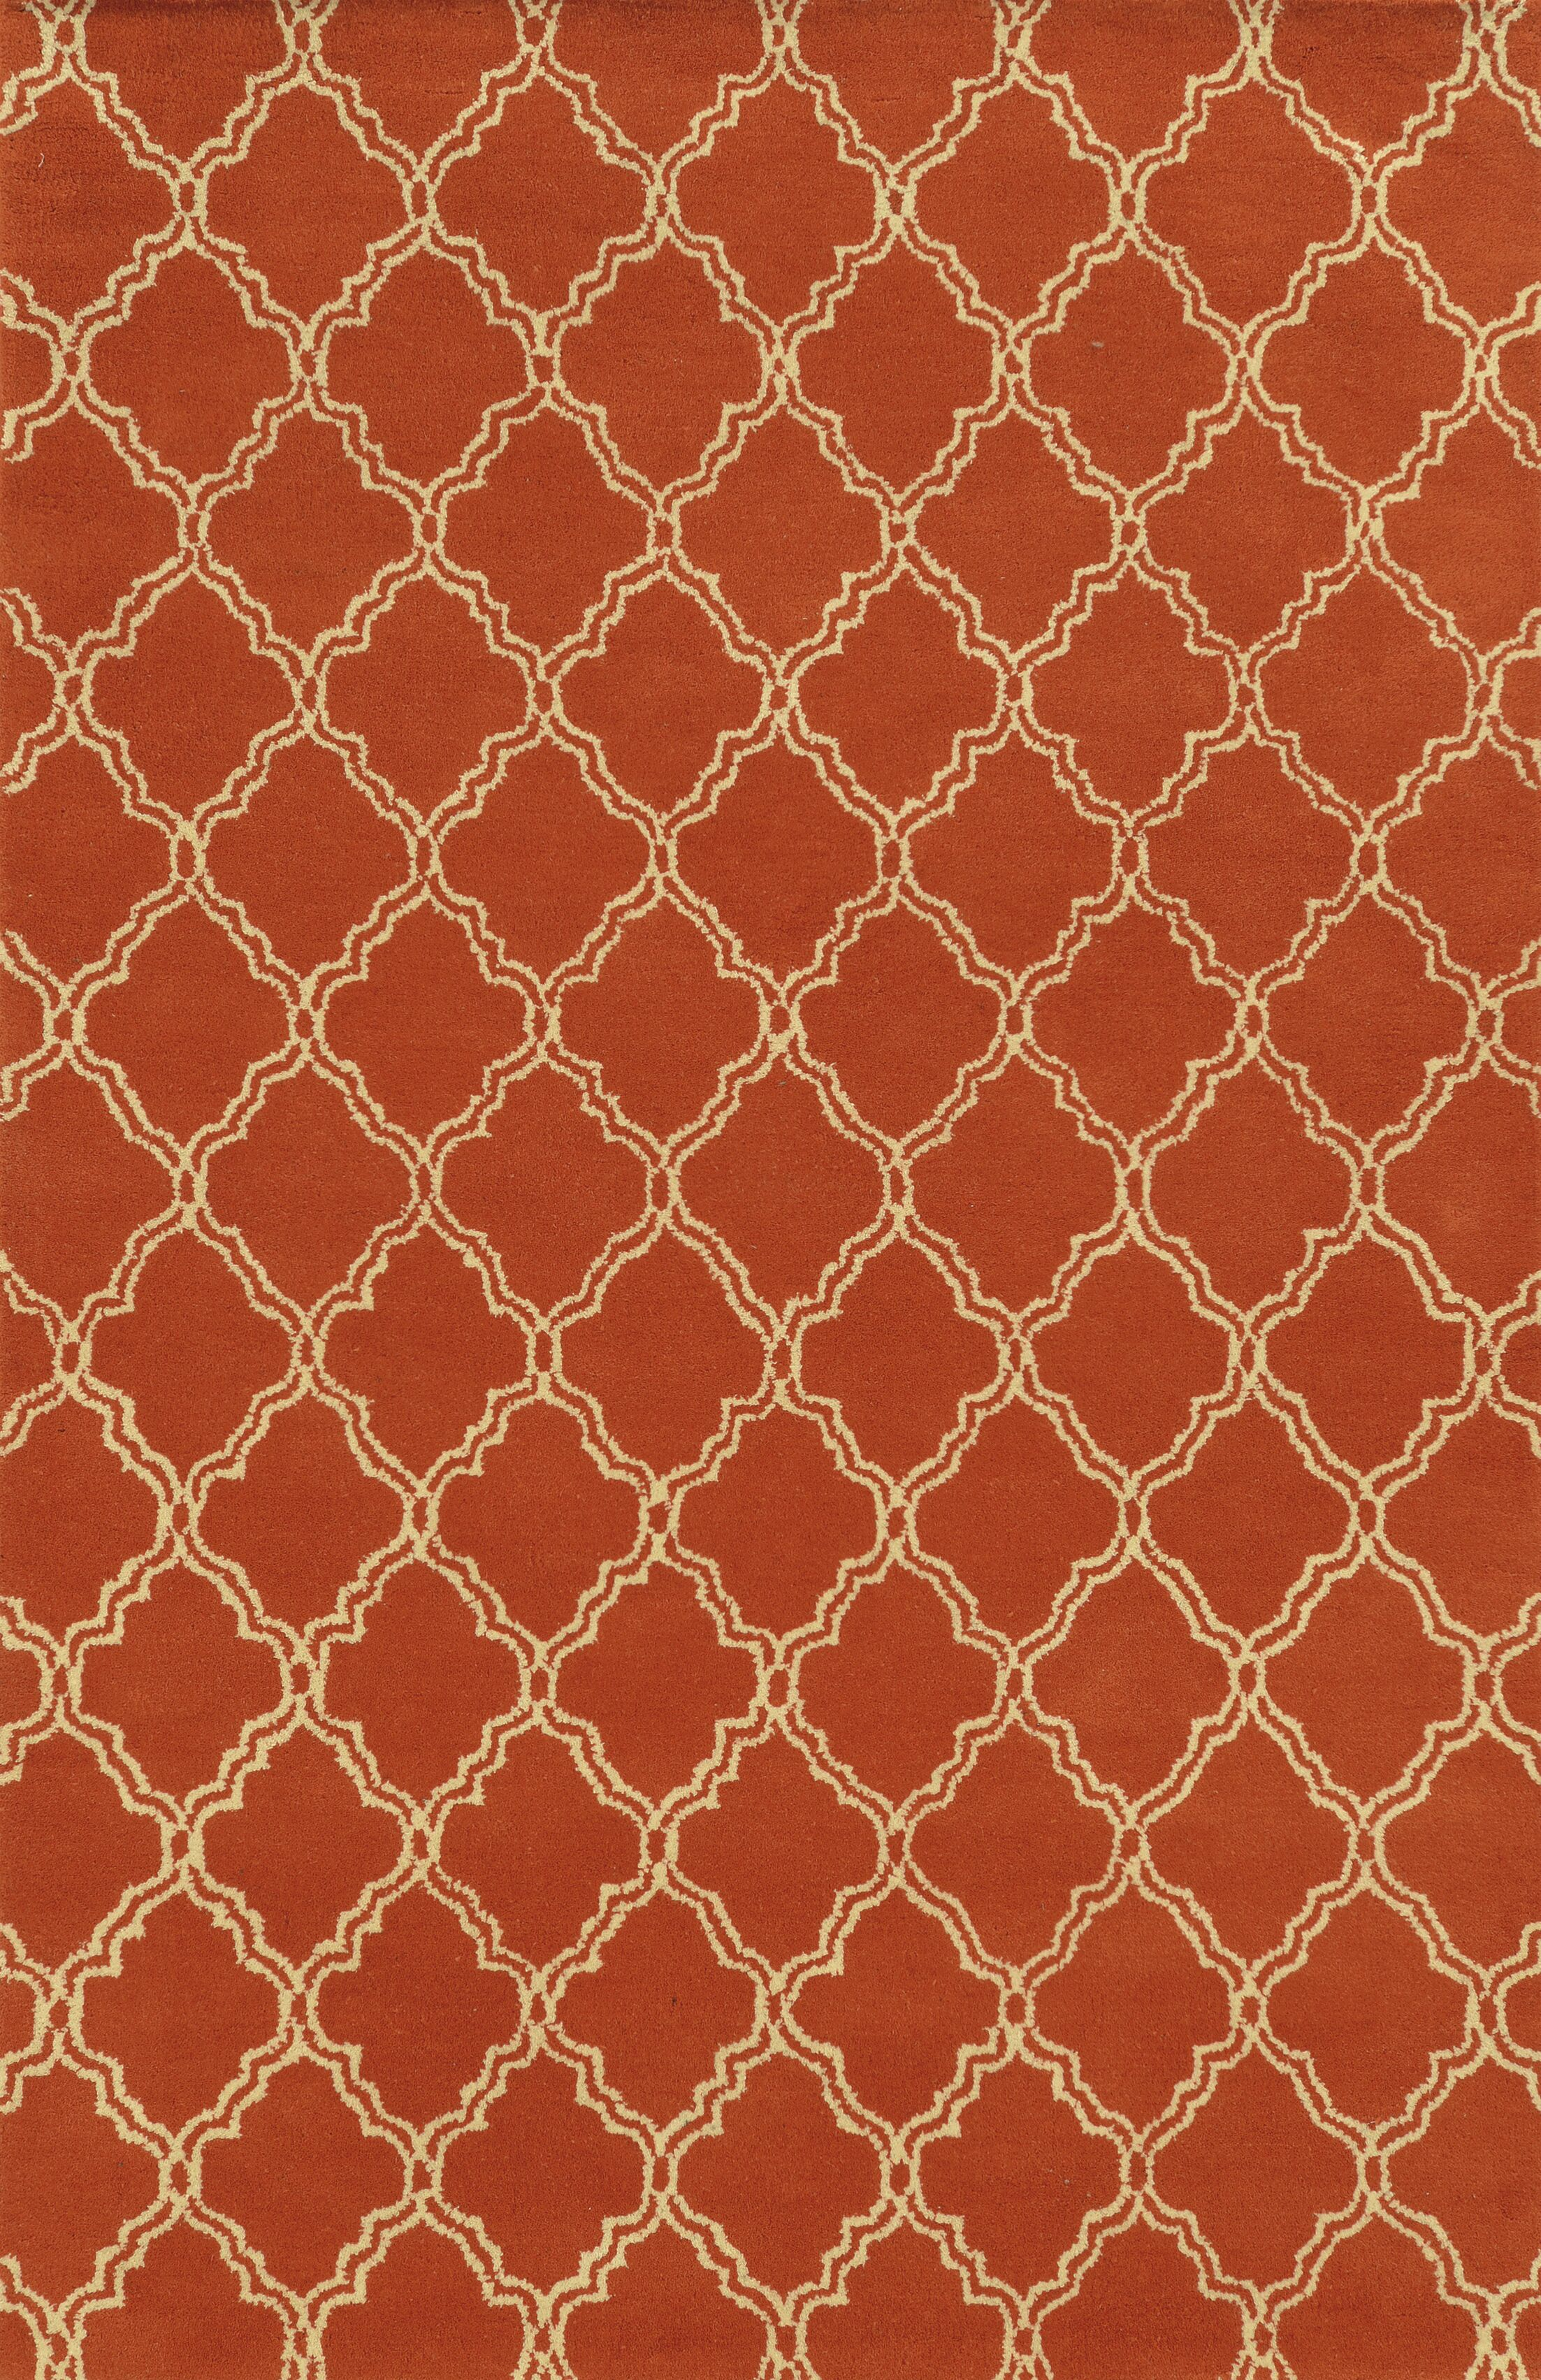 Marmaris Hand-Tufted Orange Area Rug Rug Size: Rectangle 2' x 3'